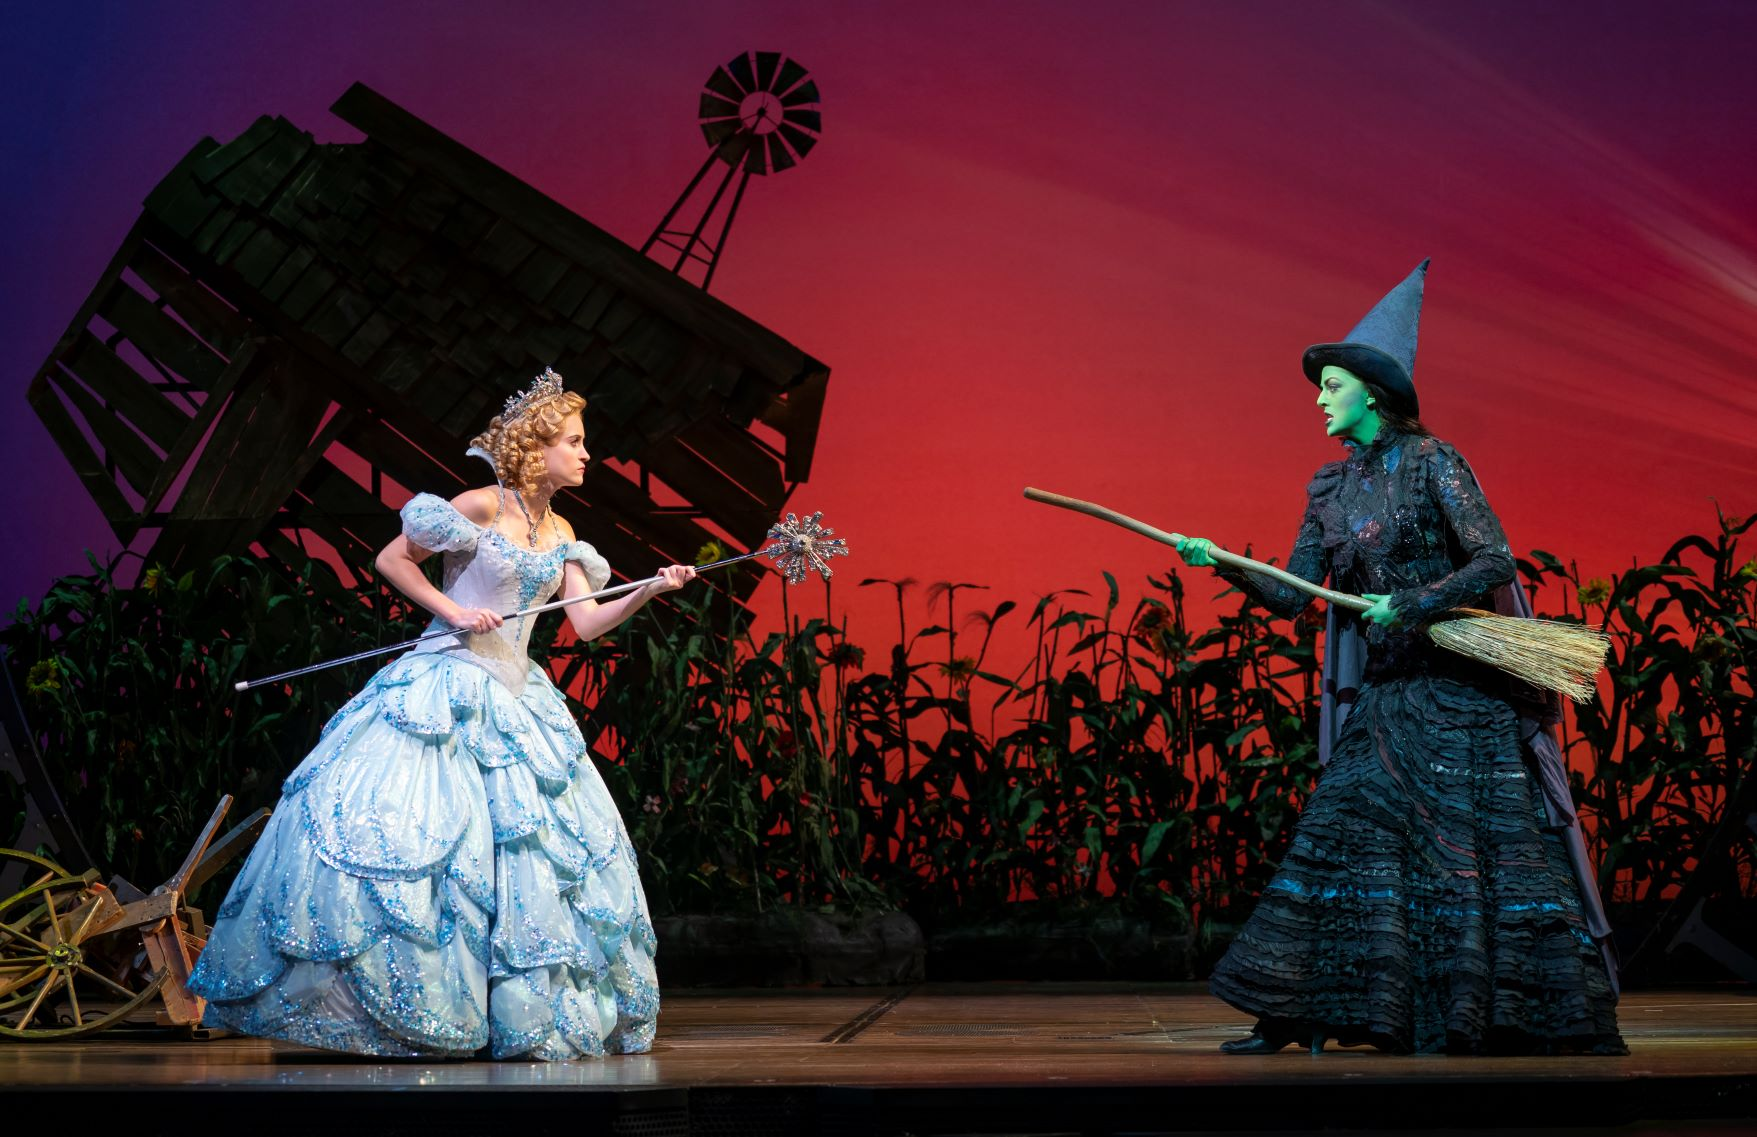 Allison Bailey & Talia Suskauer in the North American Tour of WICKED (E). Photo by Joan Marcus - resized